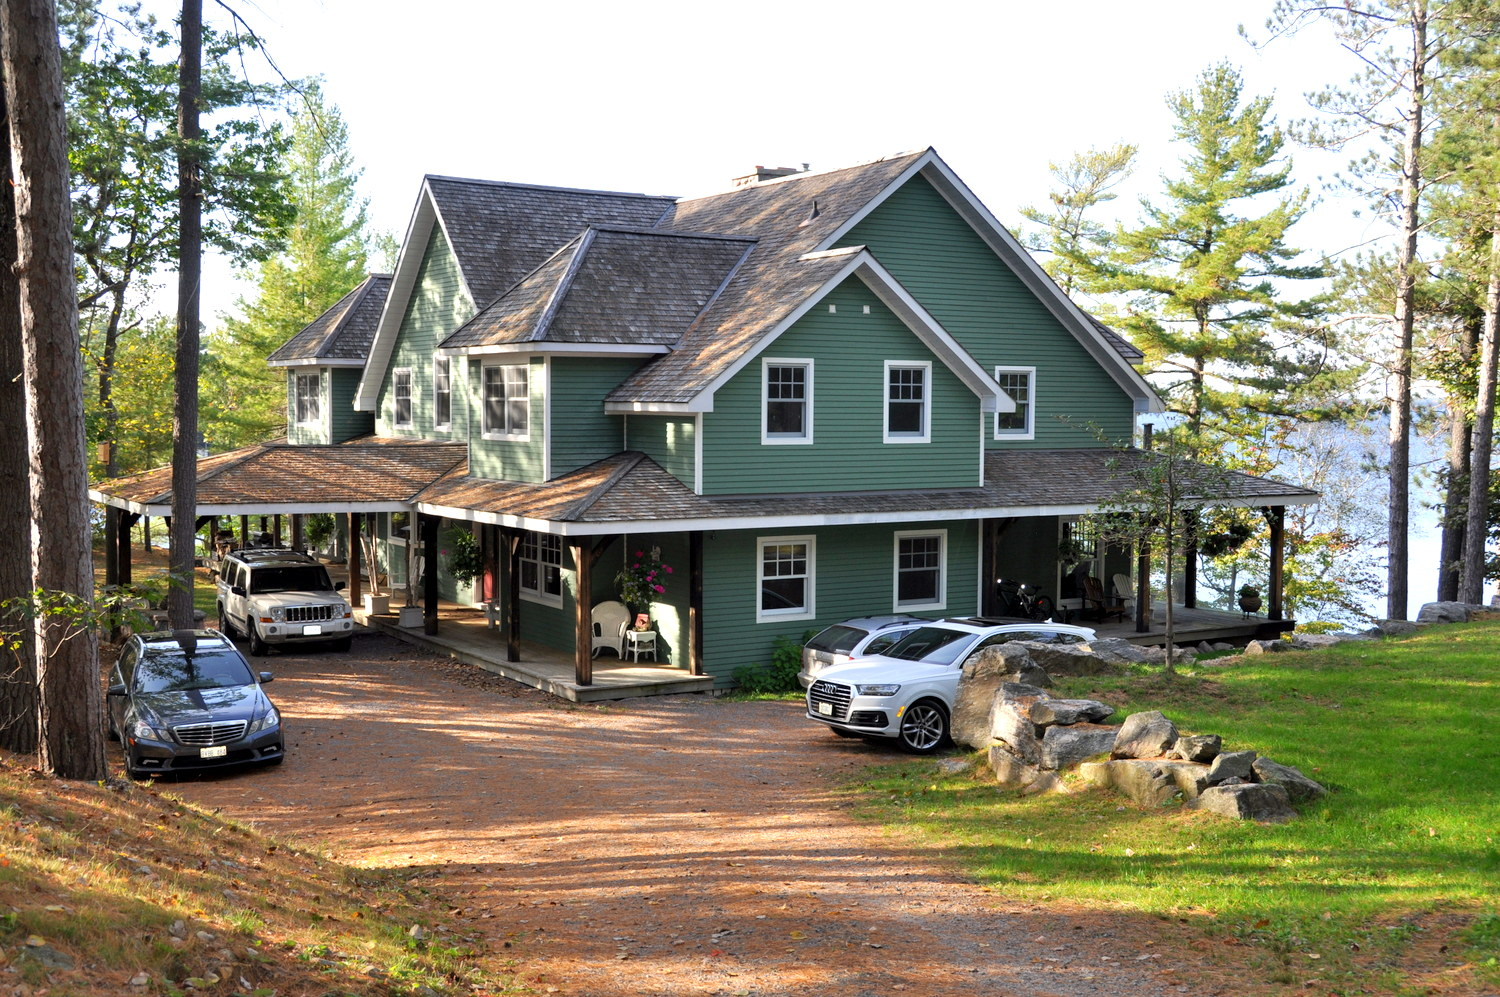 Enjoyable Luxury Muskoka Cottage For Rent On Lake Muskoka Near Download Free Architecture Designs Scobabritishbridgeorg